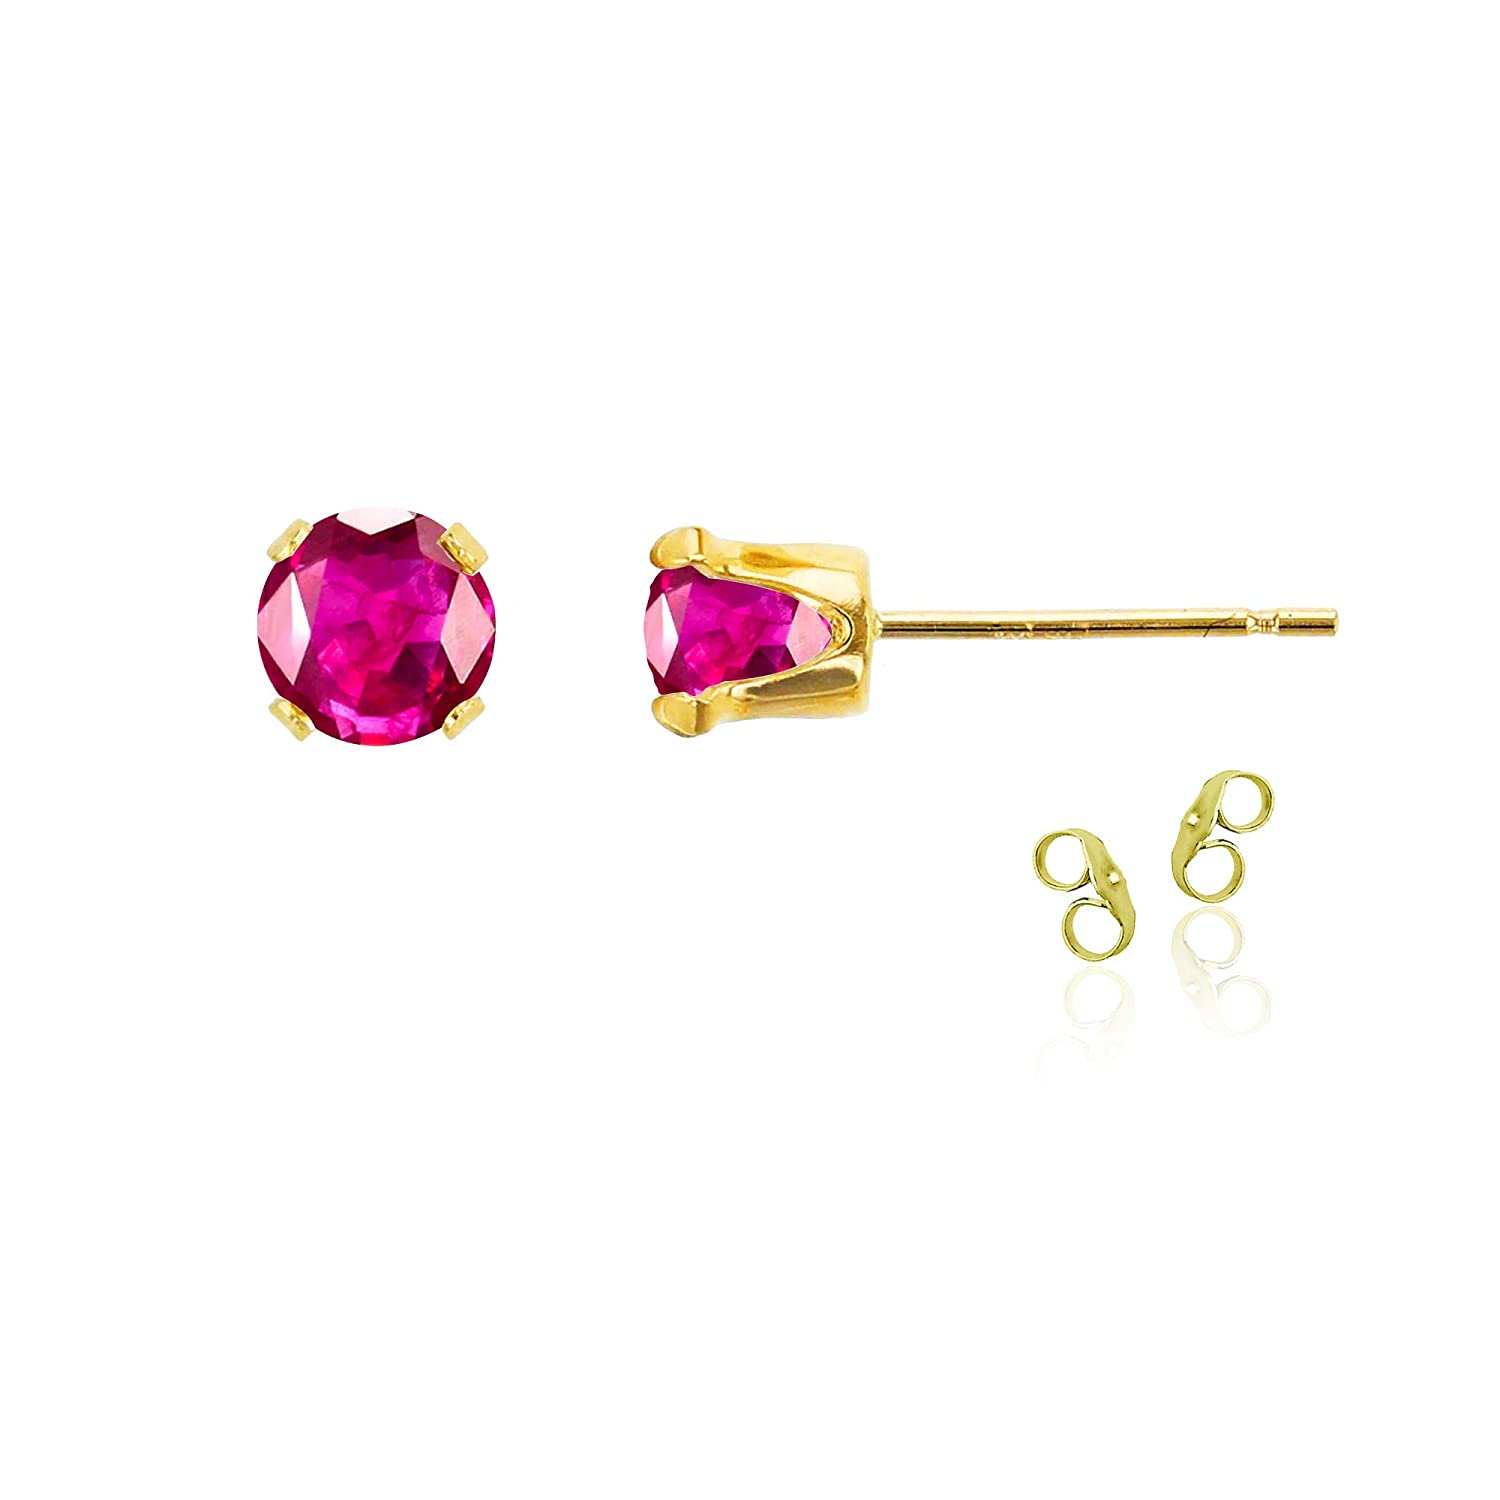 Solid 14K Gold or 14K Gold Plated 925 Sterling Silver Yellow White or Rose Gold 5mm Round Genuine Gemstone Birthstone Stud Earrings